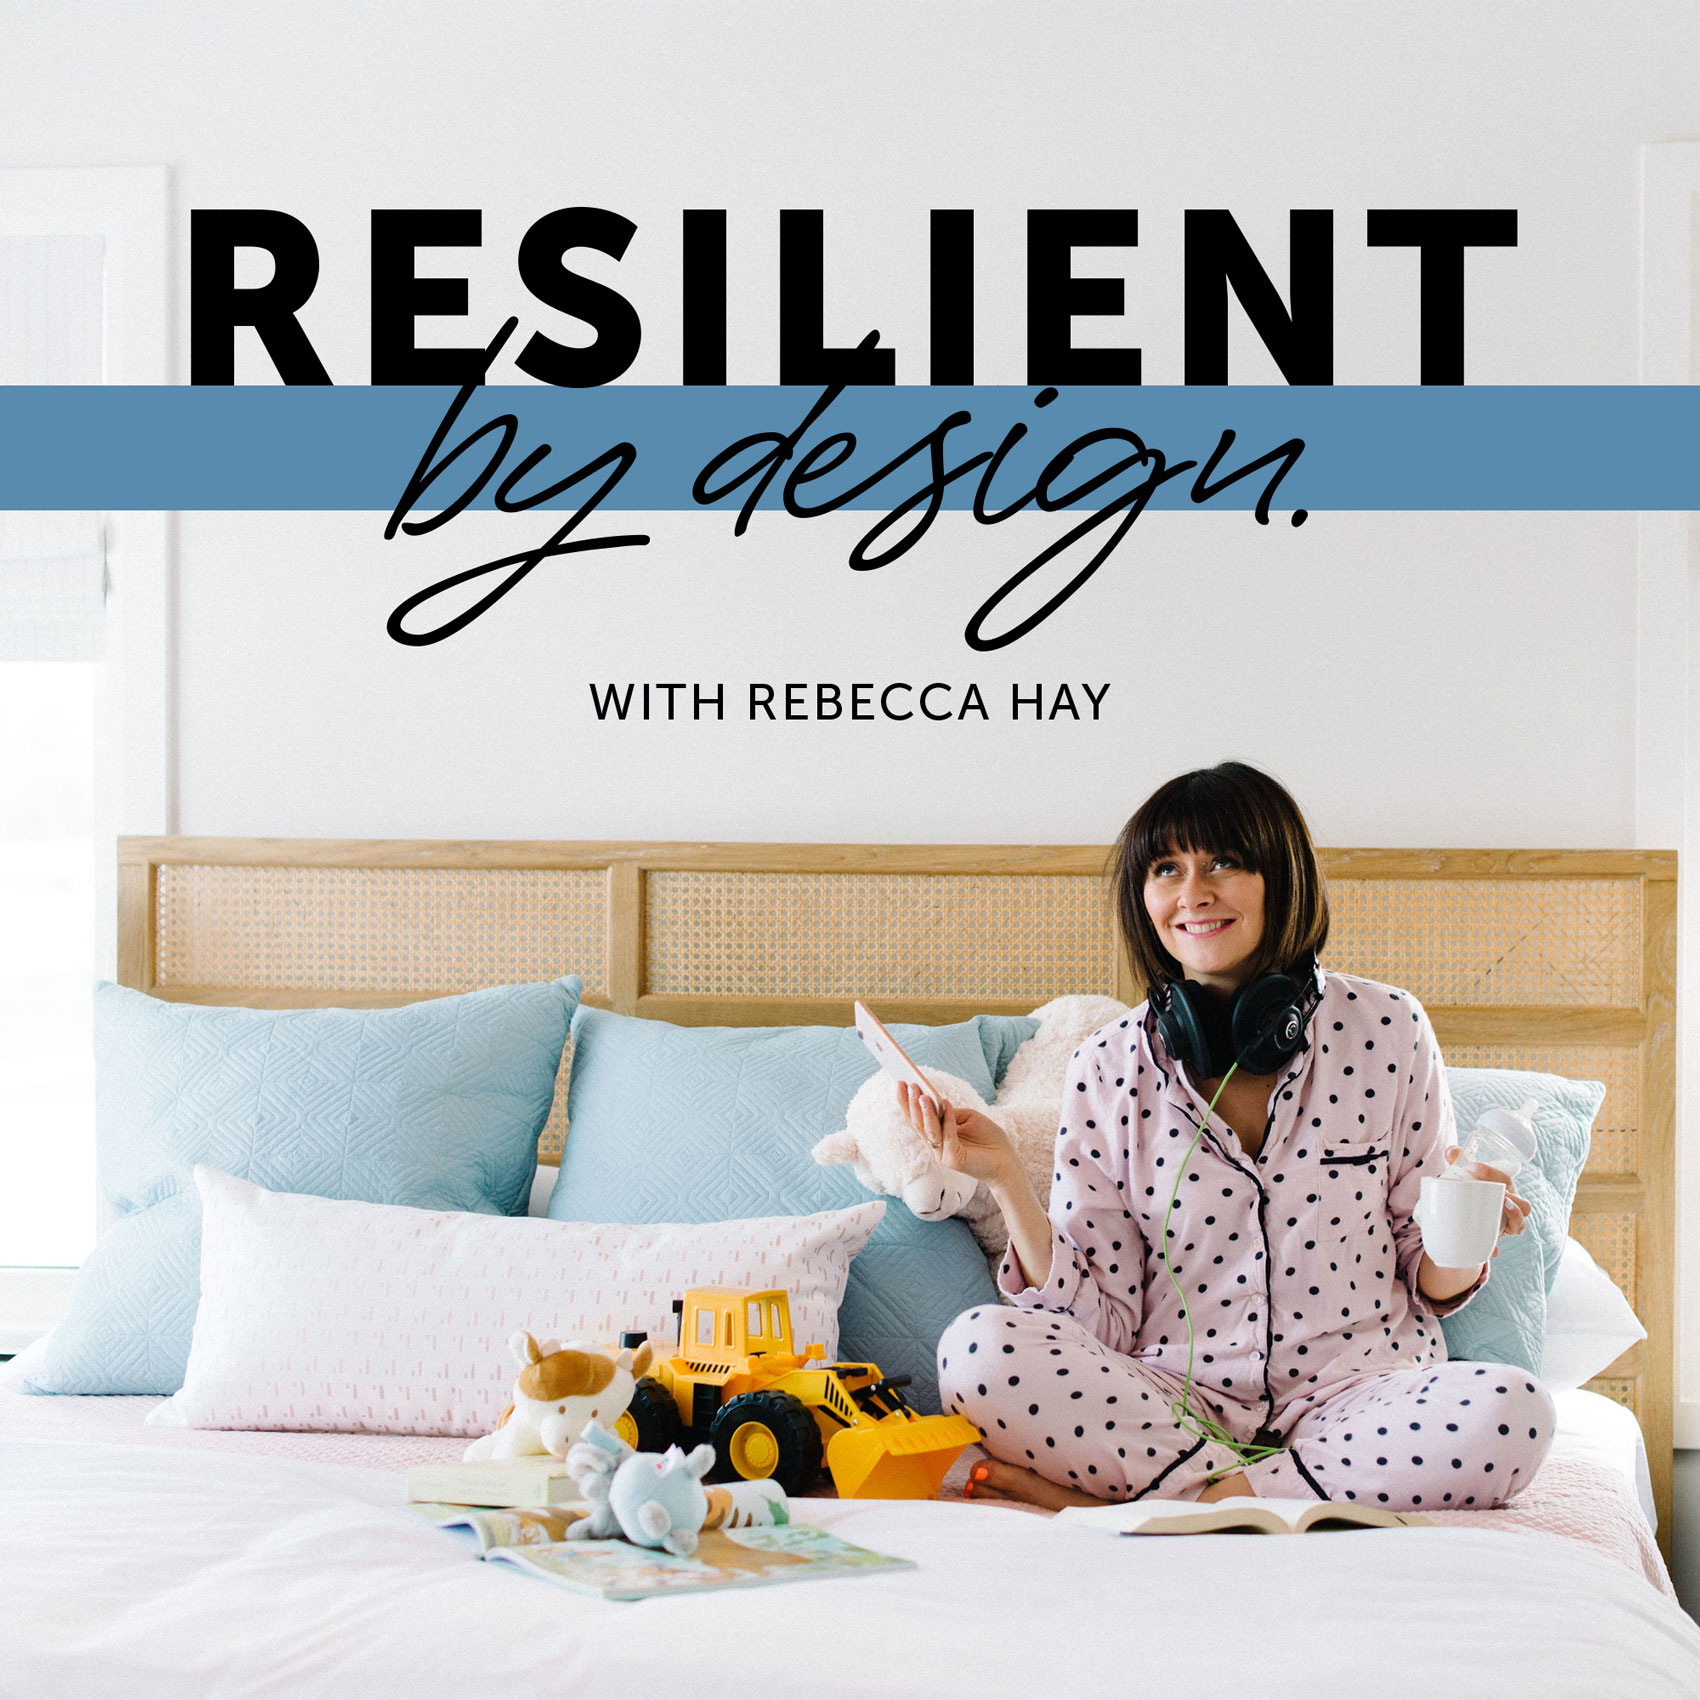 Resilient by Design with Rebecca Hay show art